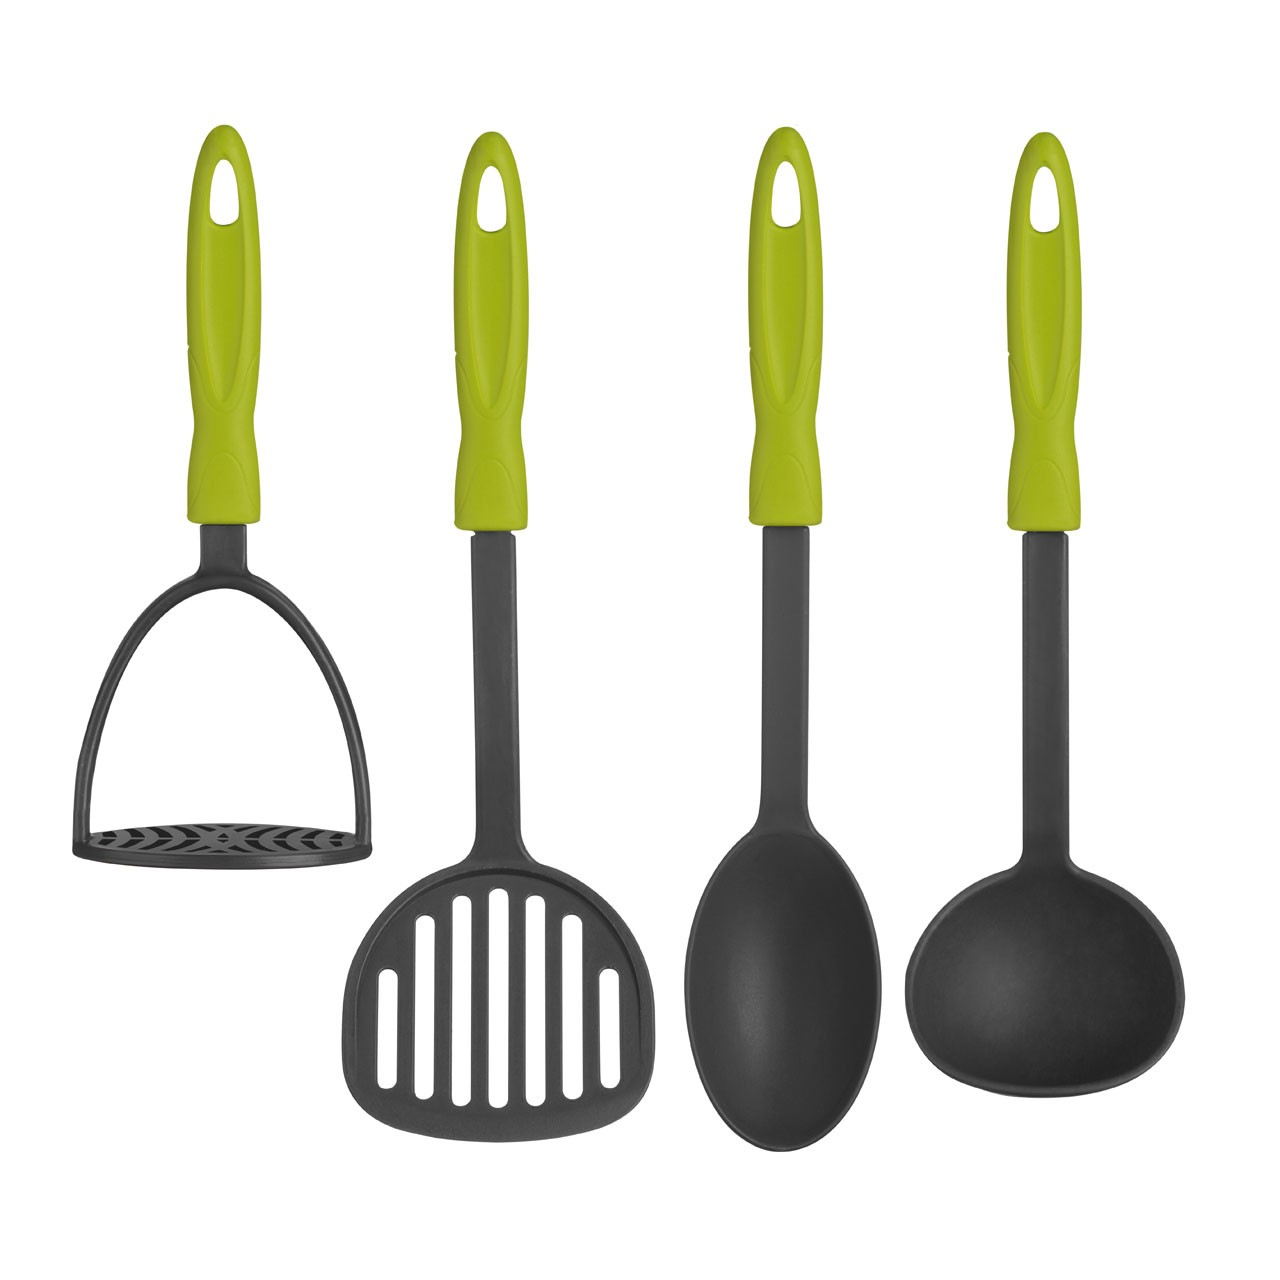 4pc KitchenTool Set Slotted Turner Ladle Masher Solid Spoon